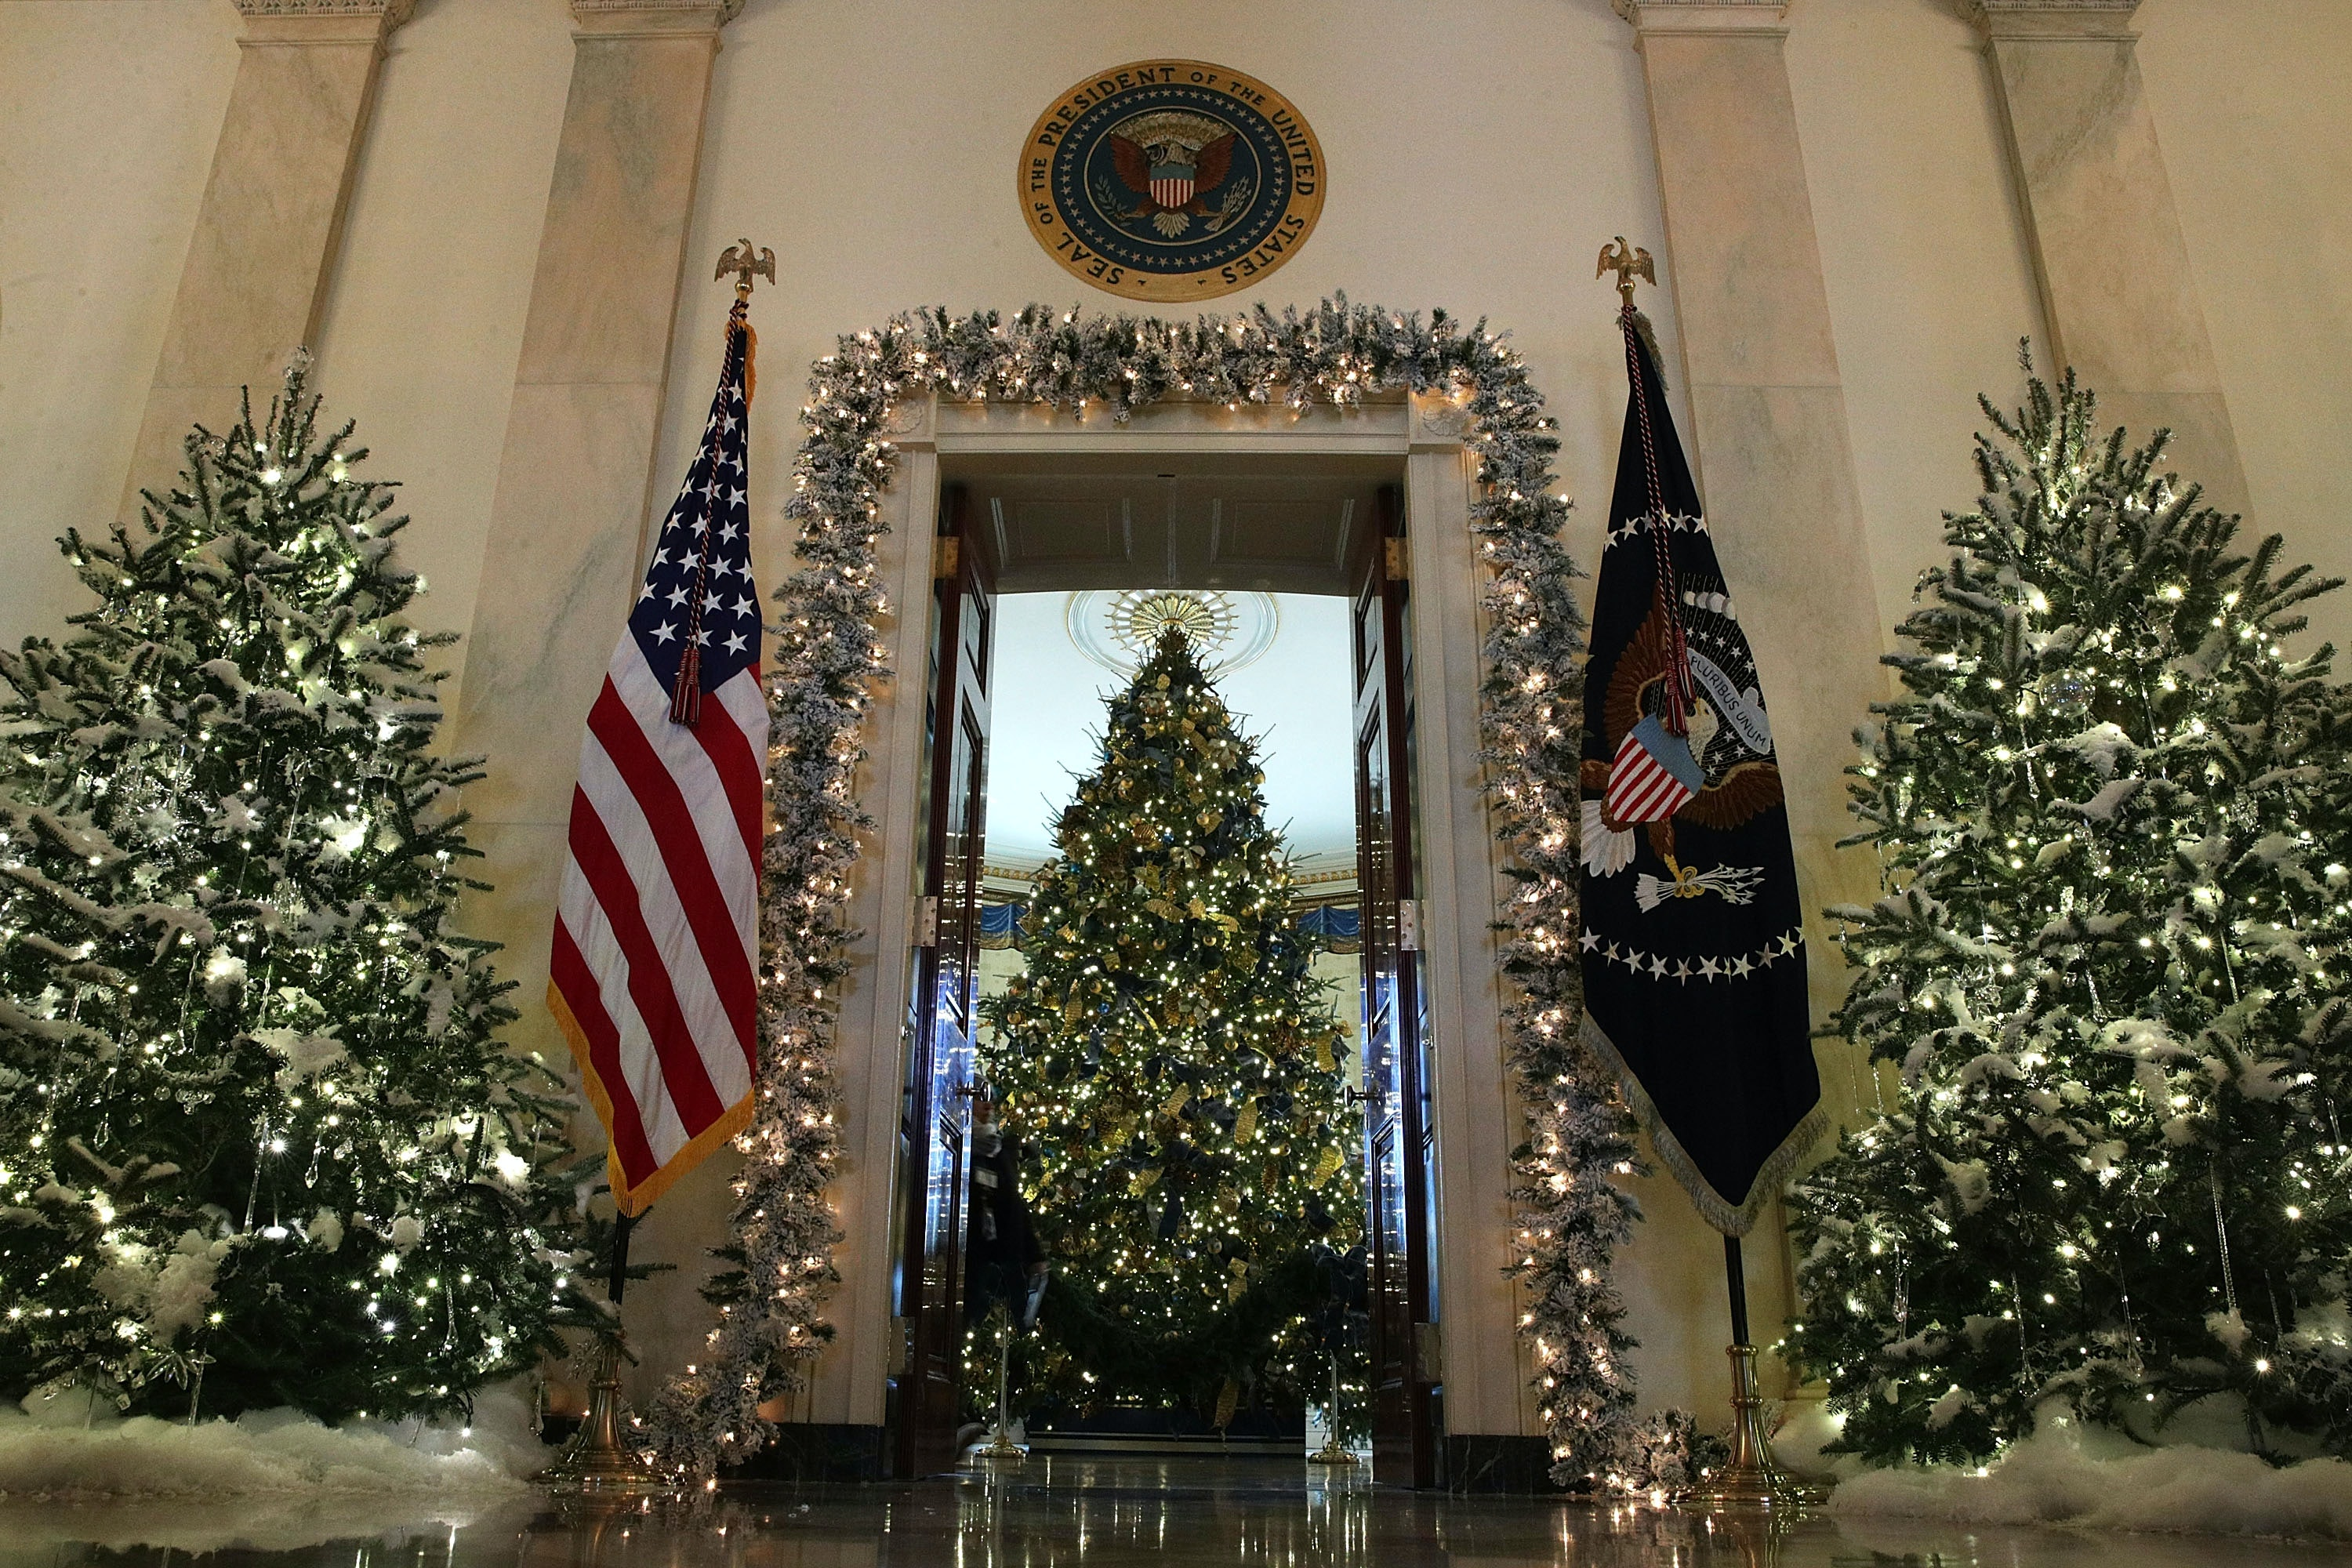 photos of the trump white house christmas decorations show its not as scary as the memes - Gingerbread Christmas Decorations Beautiful To Look